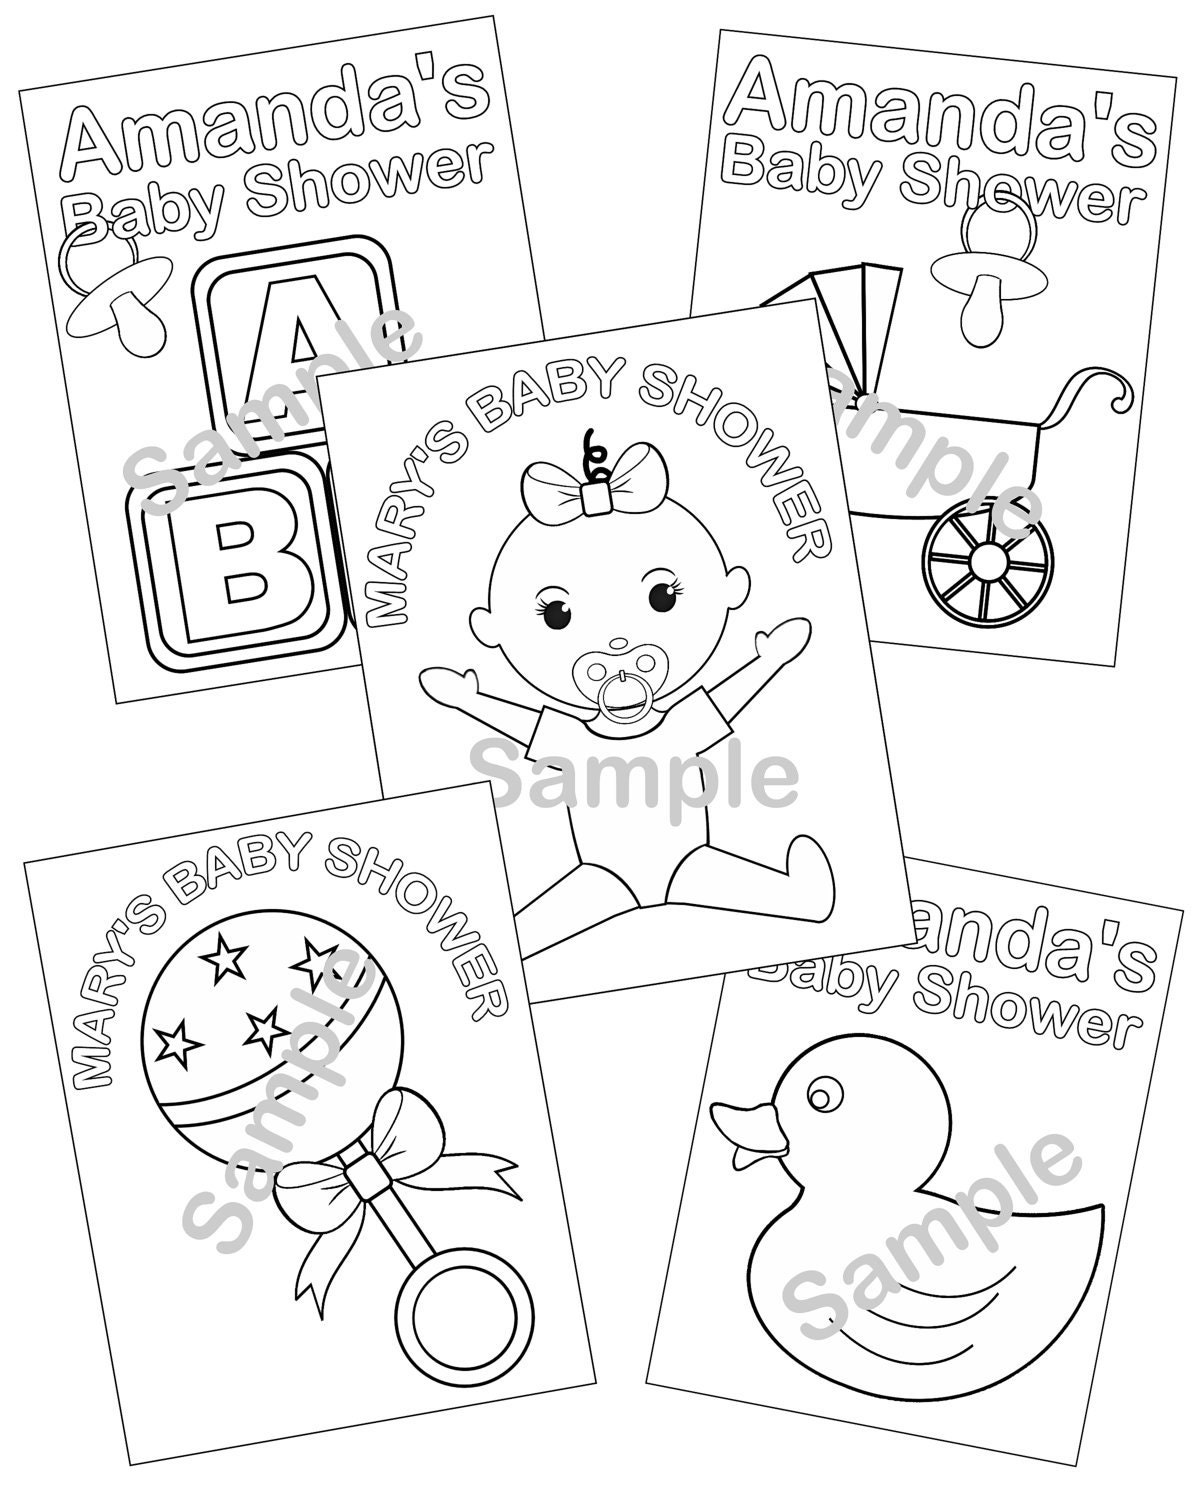 Free baby shower coloring pages for kids - Details Listing Is For 5 Personalized Printable Baby Shower Coloring